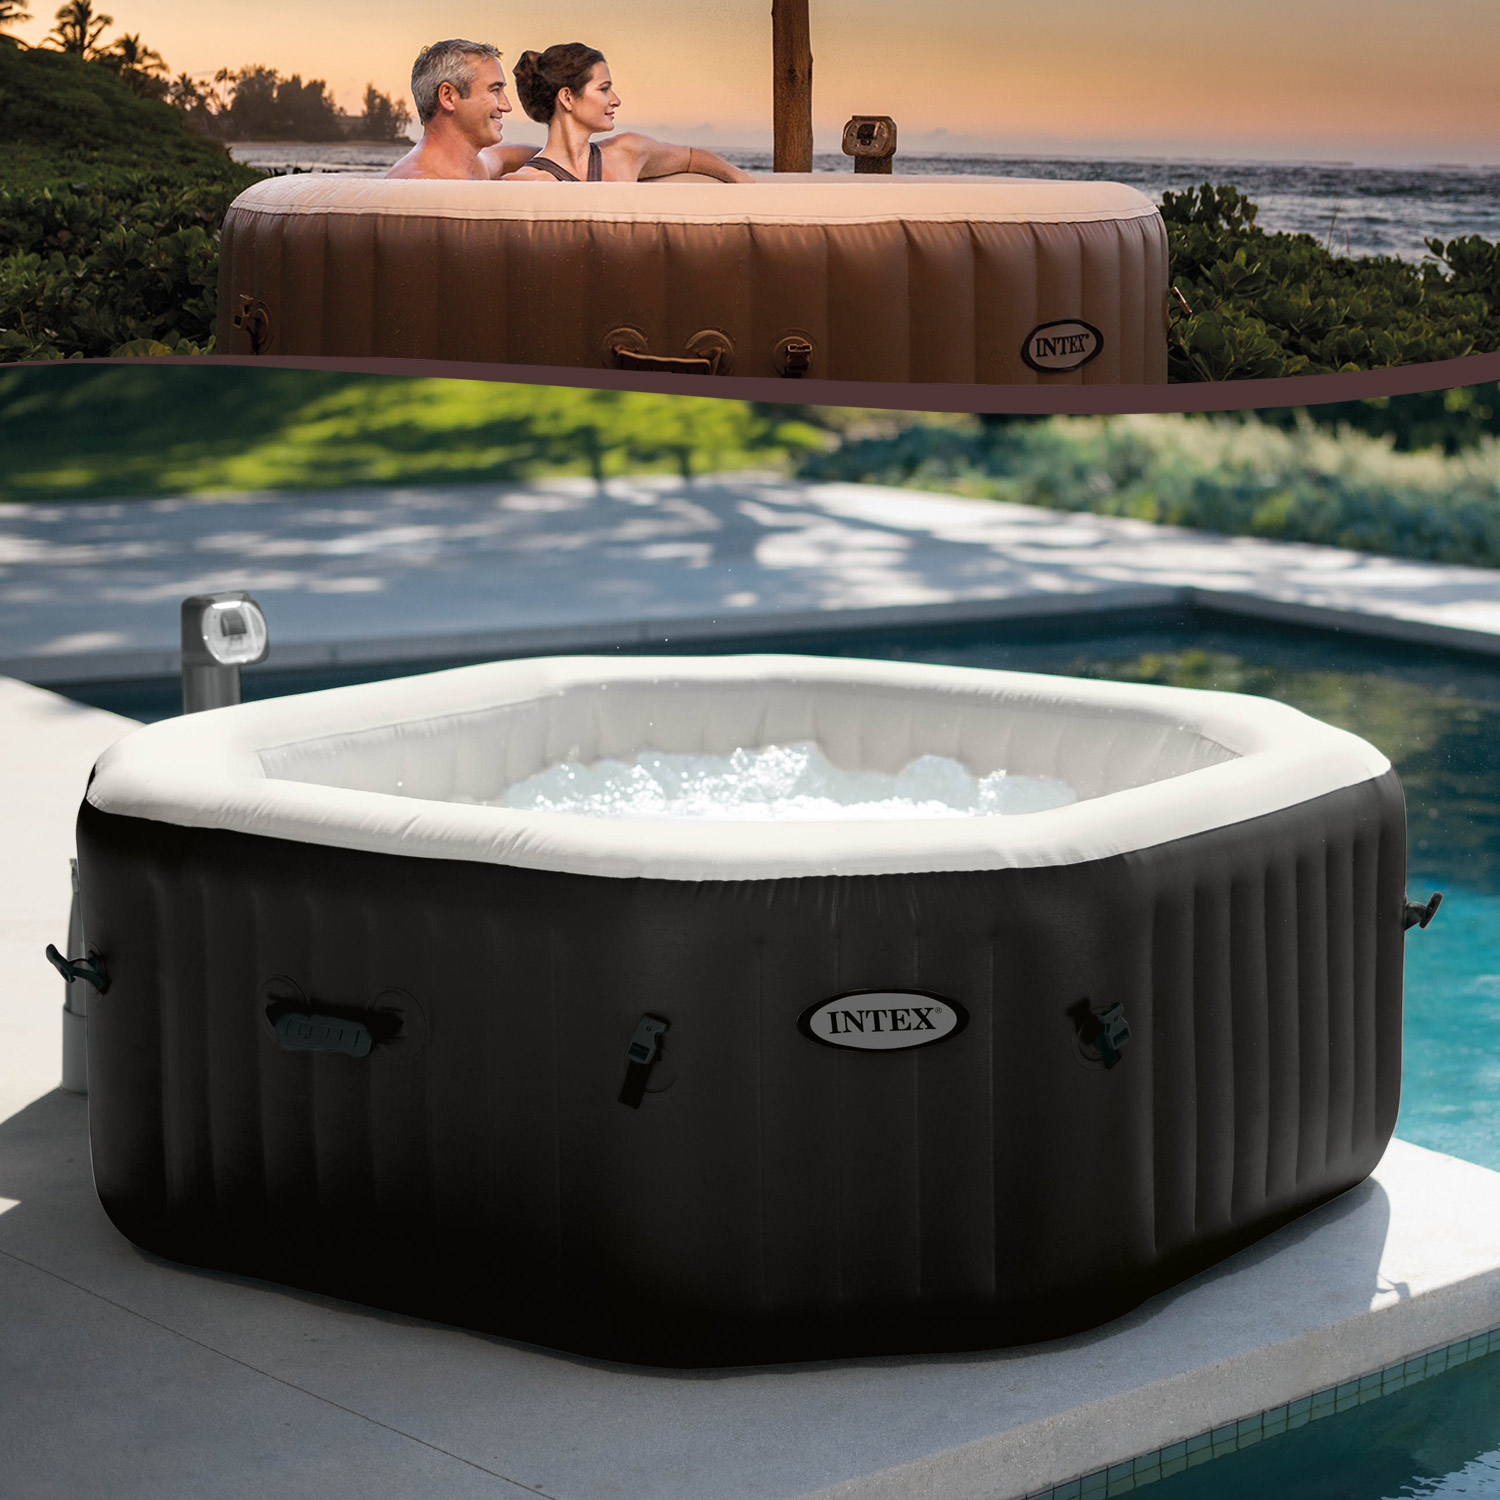 intex 128454 whirlpool spa 201x71cm pool bathtub jacuzzi bathtub whirl tub ebay. Black Bedroom Furniture Sets. Home Design Ideas